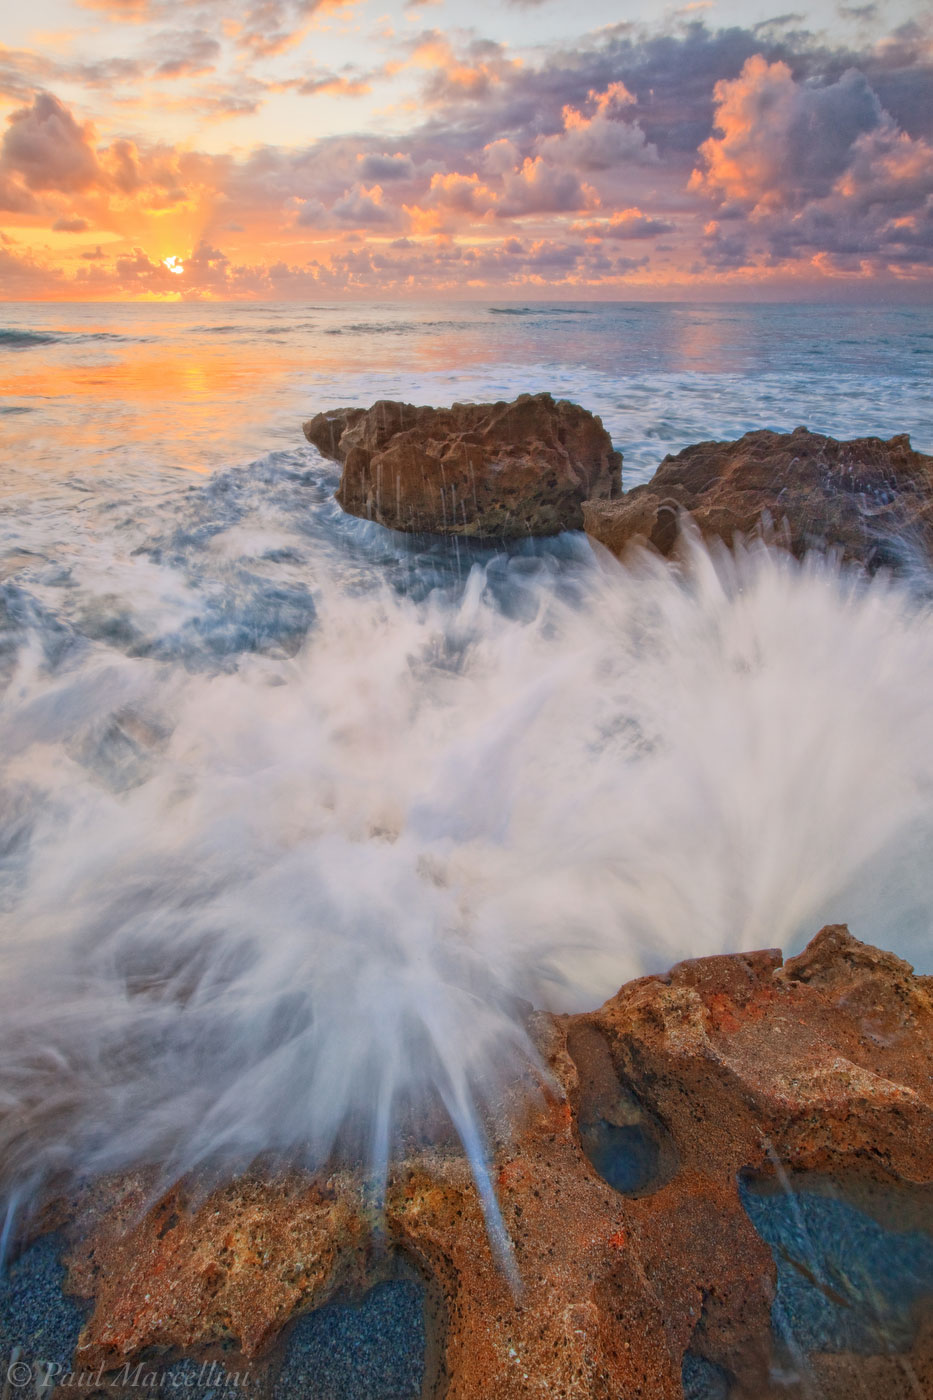 blowing rocks, jupiter, island, waves, anastasia formation, coral cove, florida, south florida, nature, photography, photo